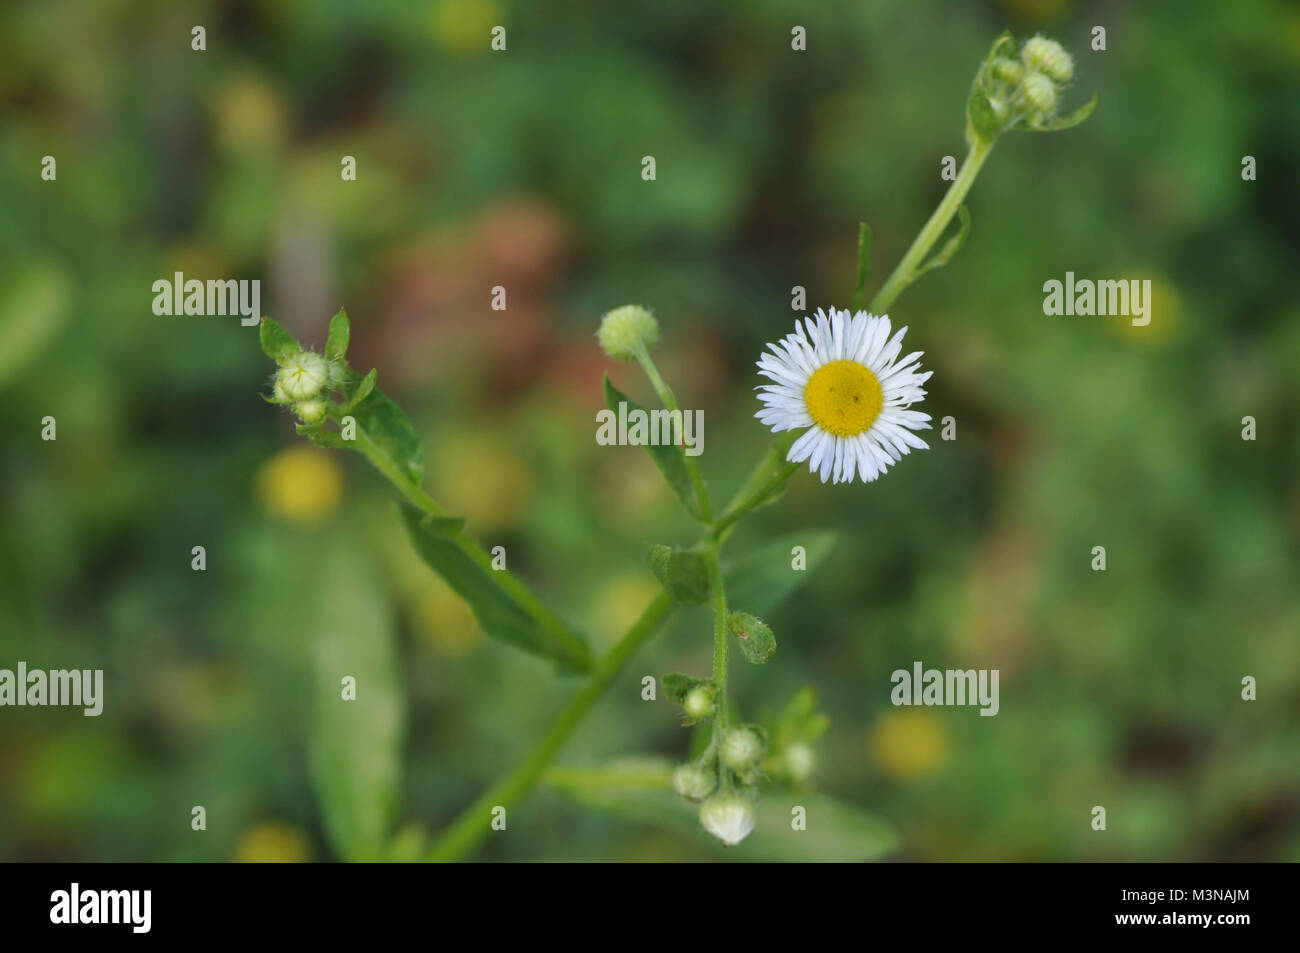 Small daisy flower looks like a sad frowning face stock photo small daisy flower looks like a sad frowning face izmirmasajfo